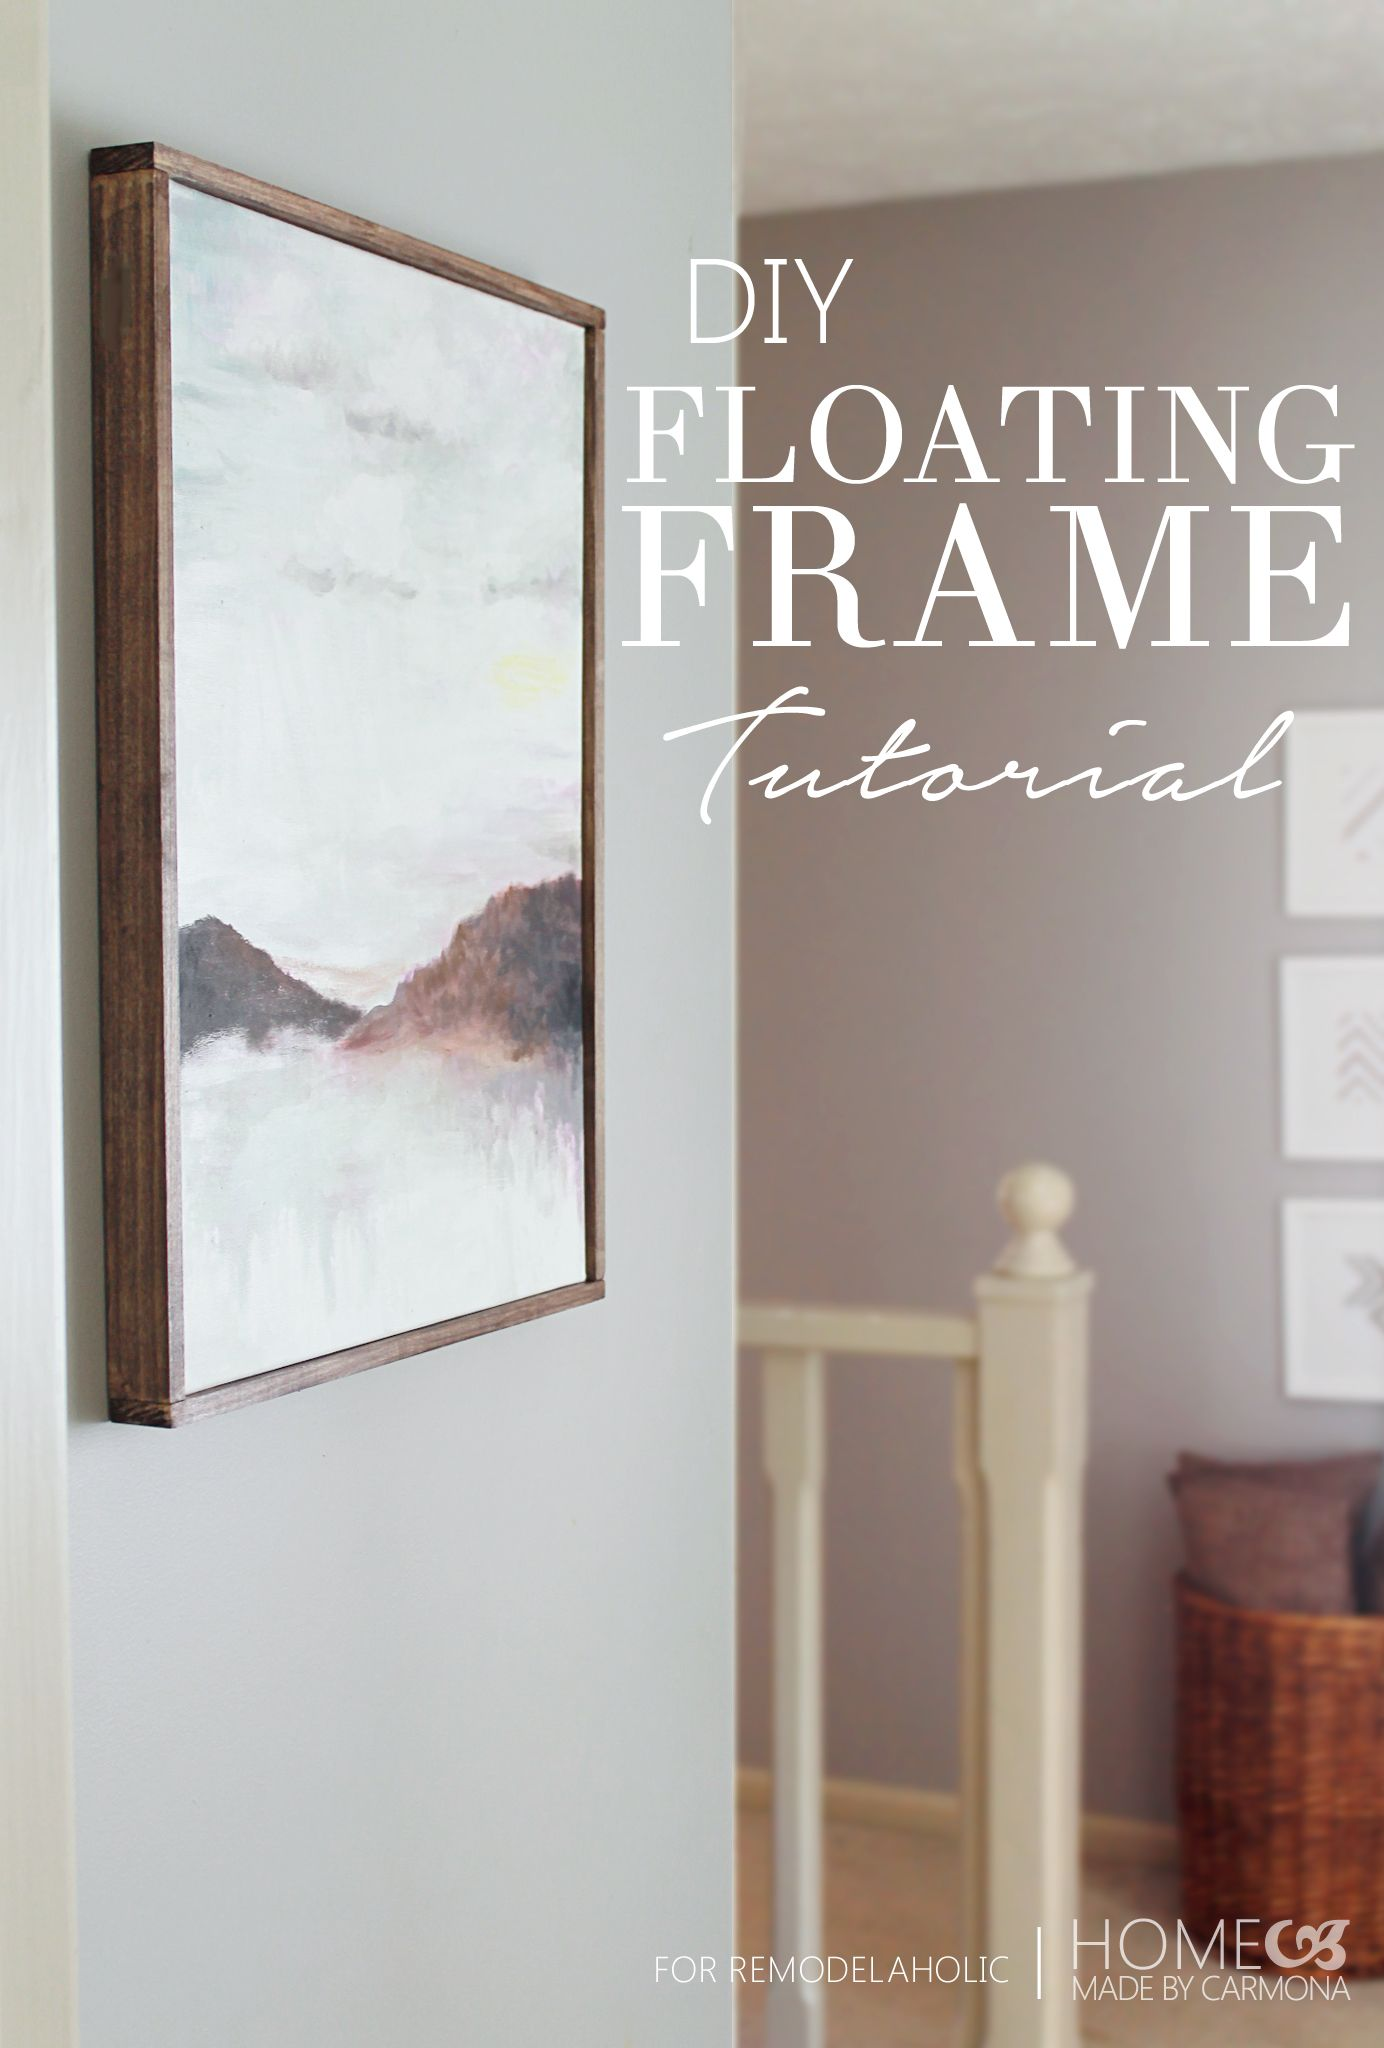 This Is Such A Pretty Way To Dress Up Walls Diy Floating Frame Tutorial Remodelaholic Diyframe Floatingframe Diy Canvas Diy Frame Canvas Frame